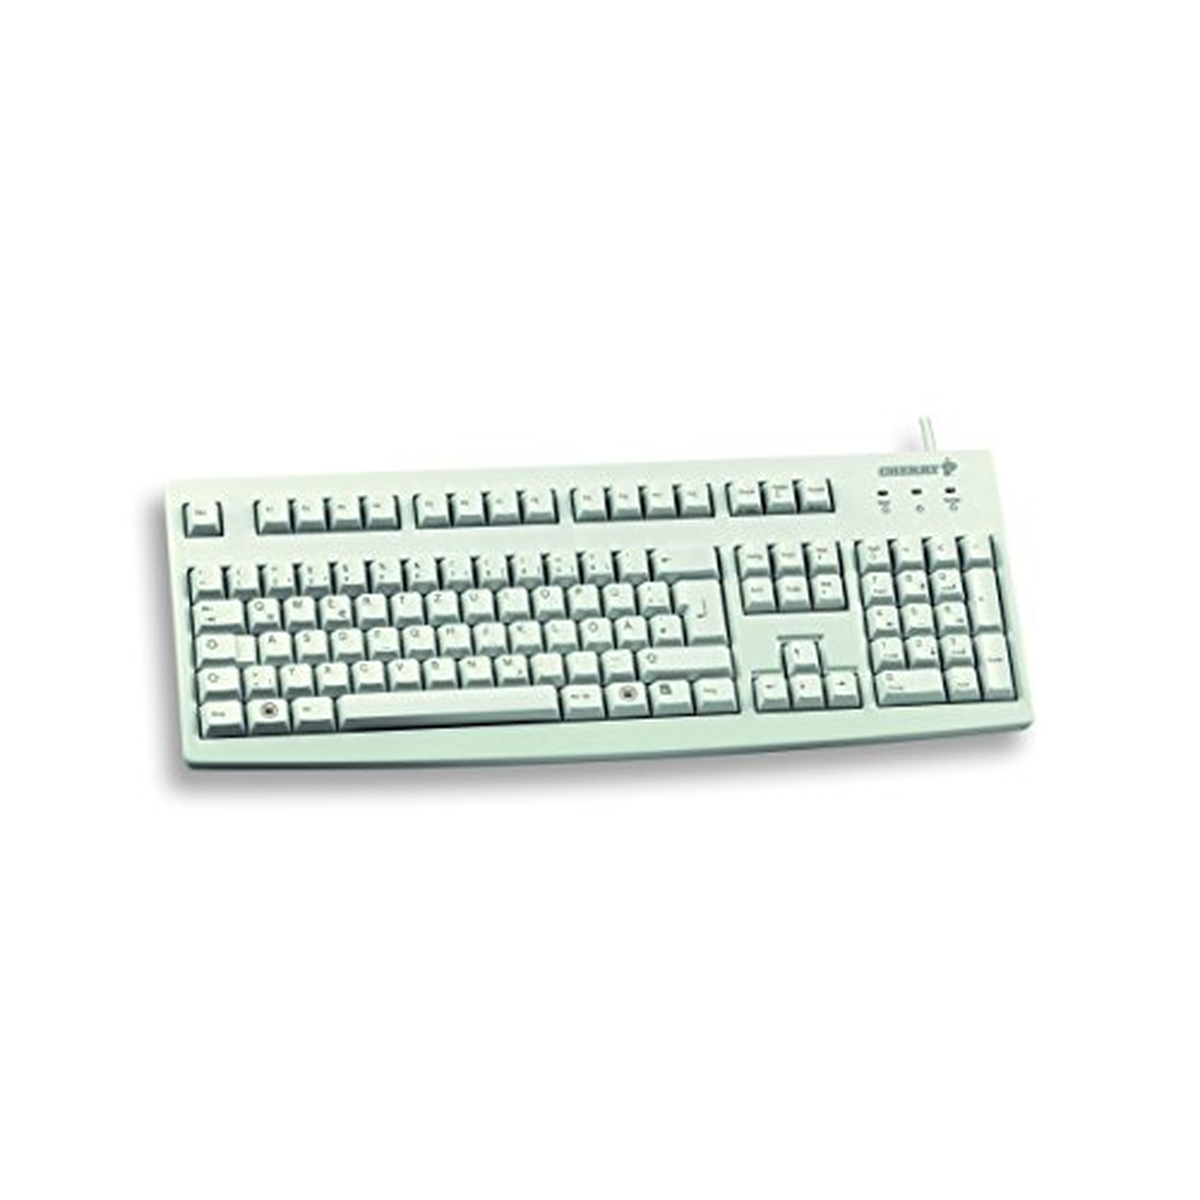 Cherry G83-6105 USB grau